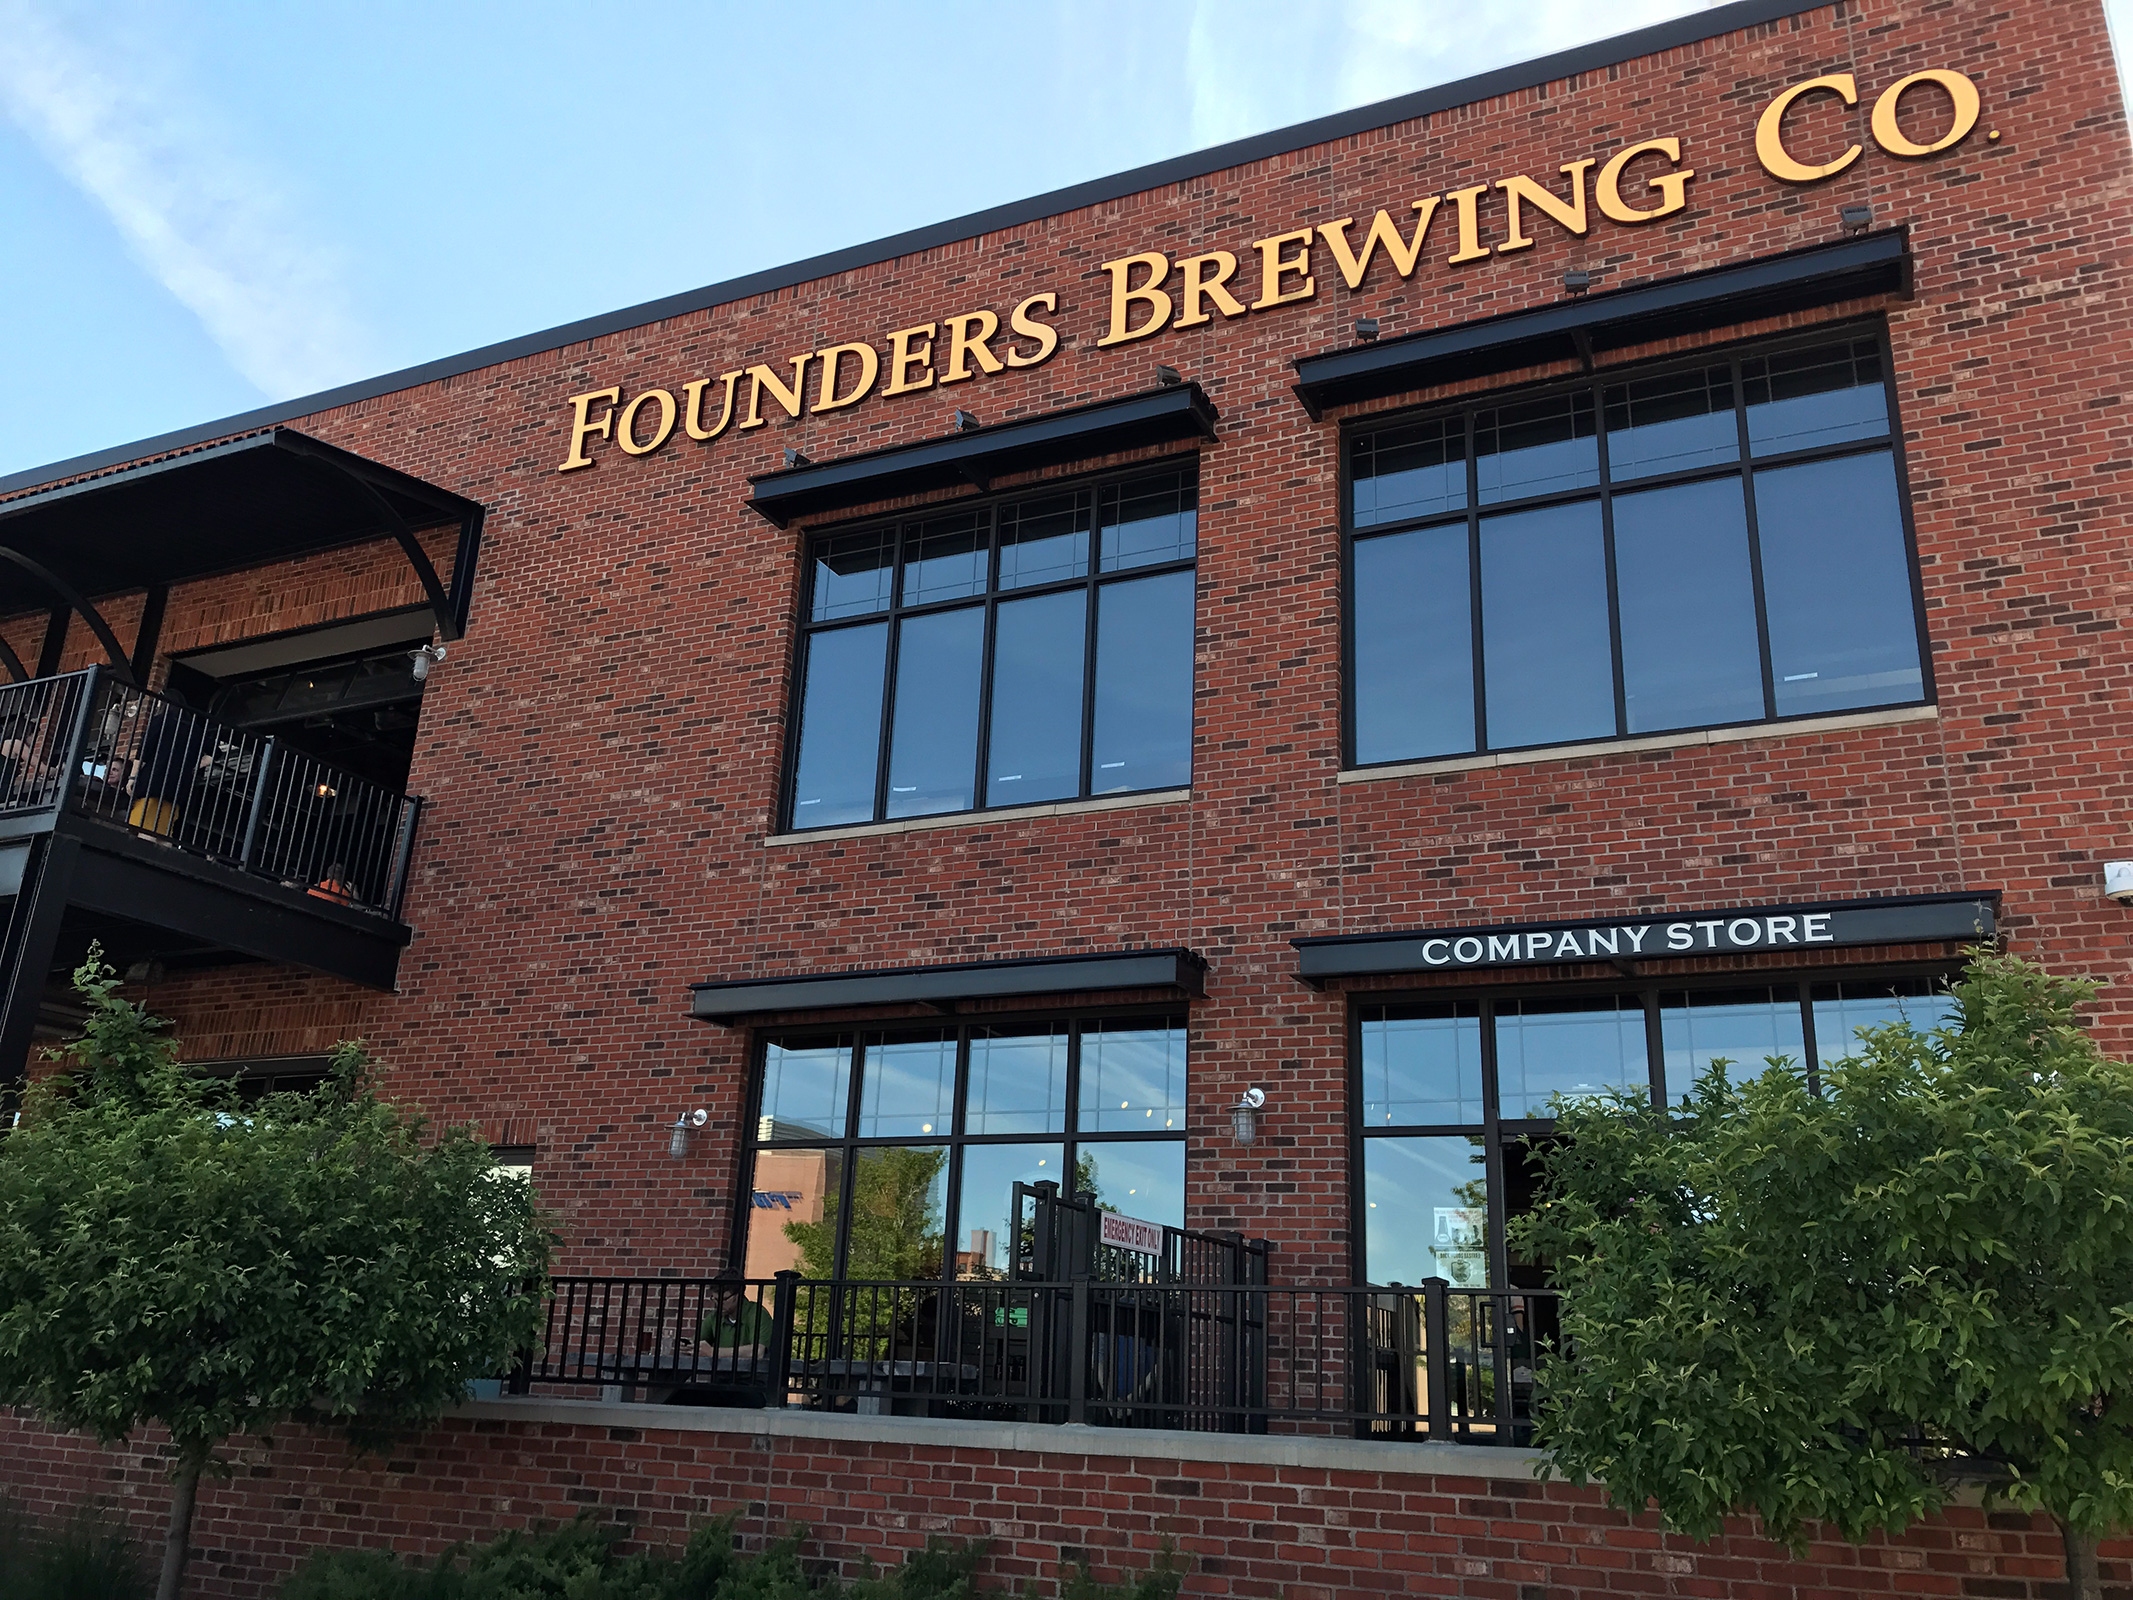 Founders Brewing Co. in Grand Rapids by Jets Like Taxis / Hopsmash